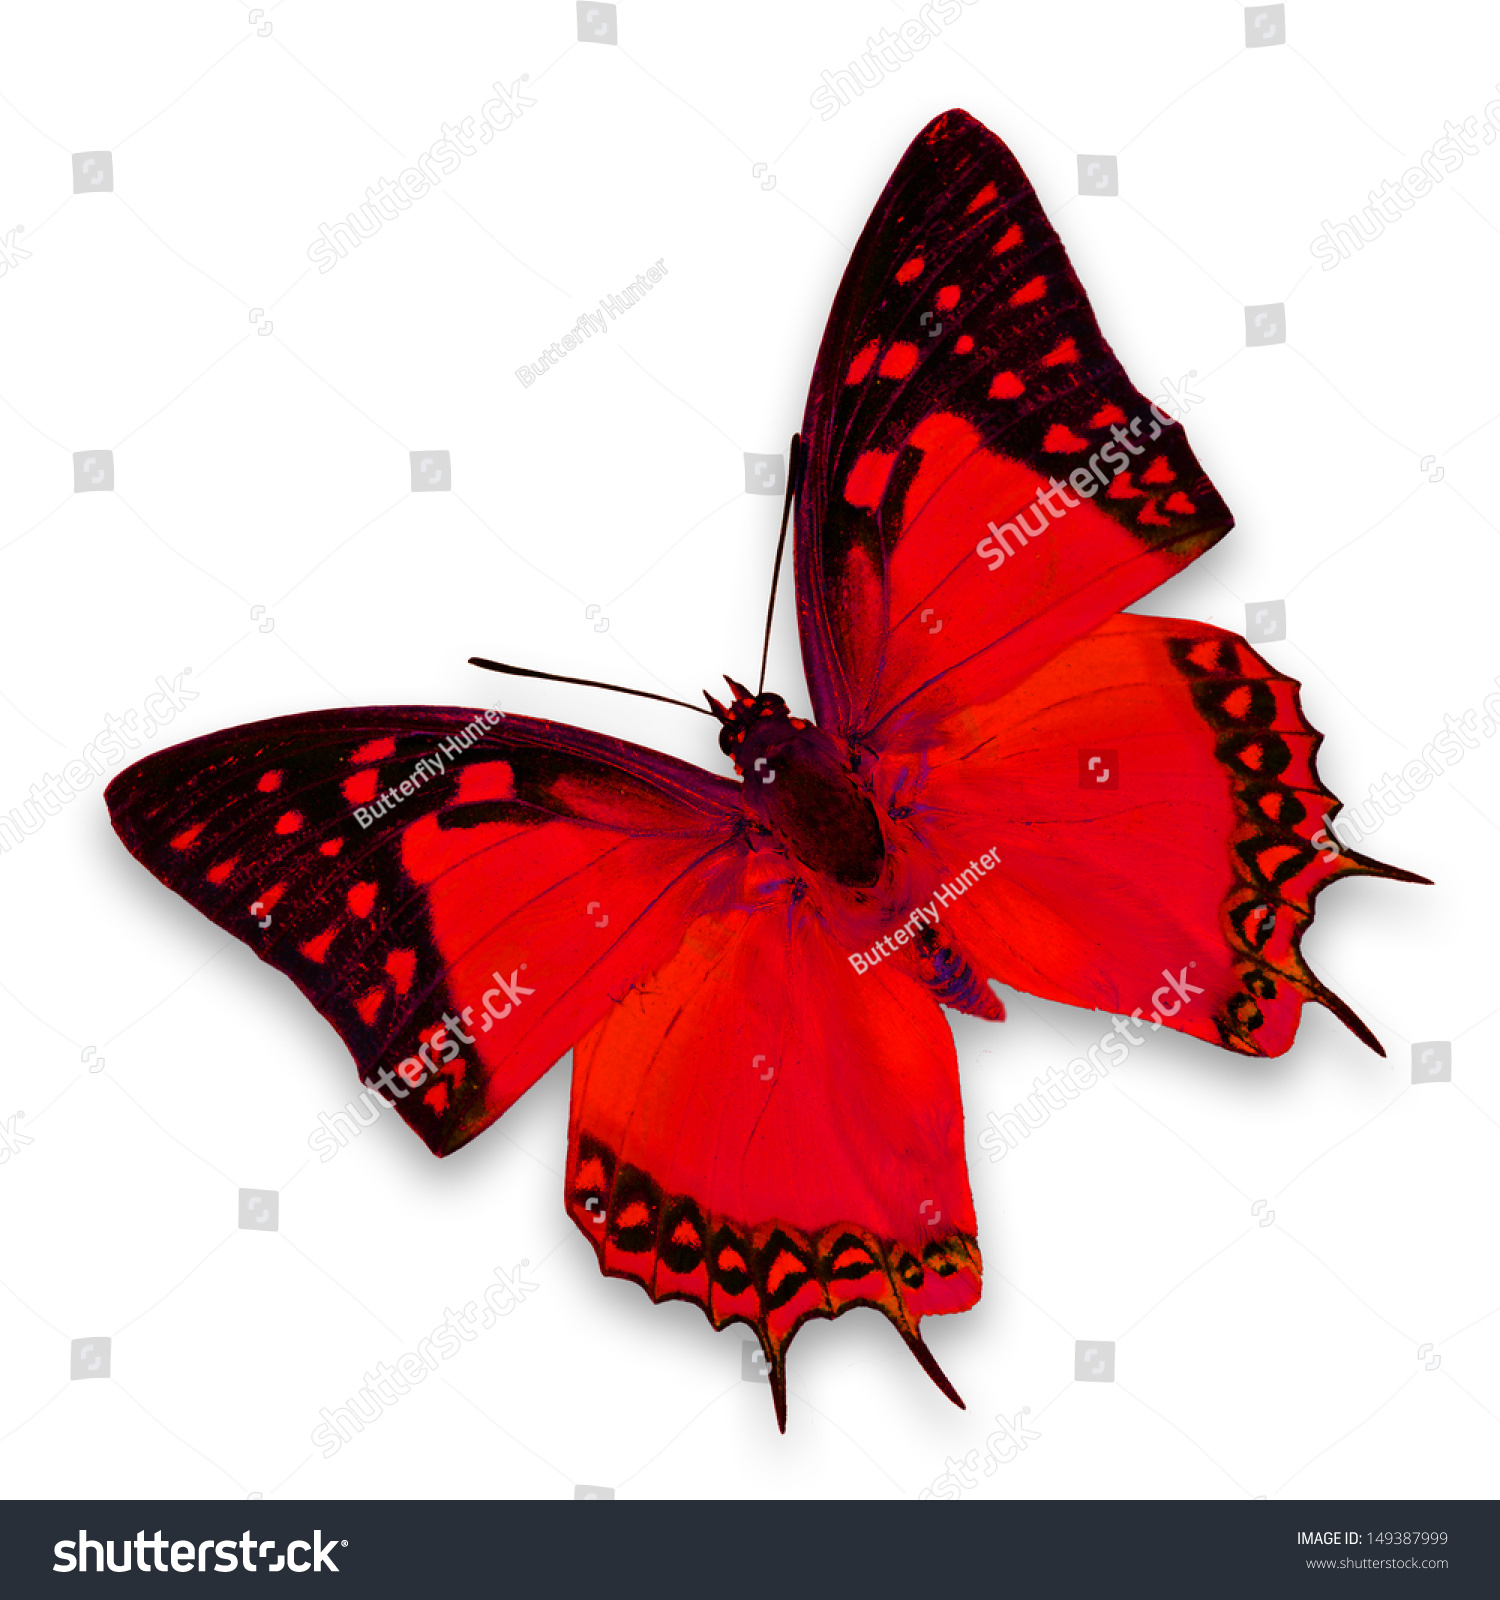 Red butterfly background - photo#14